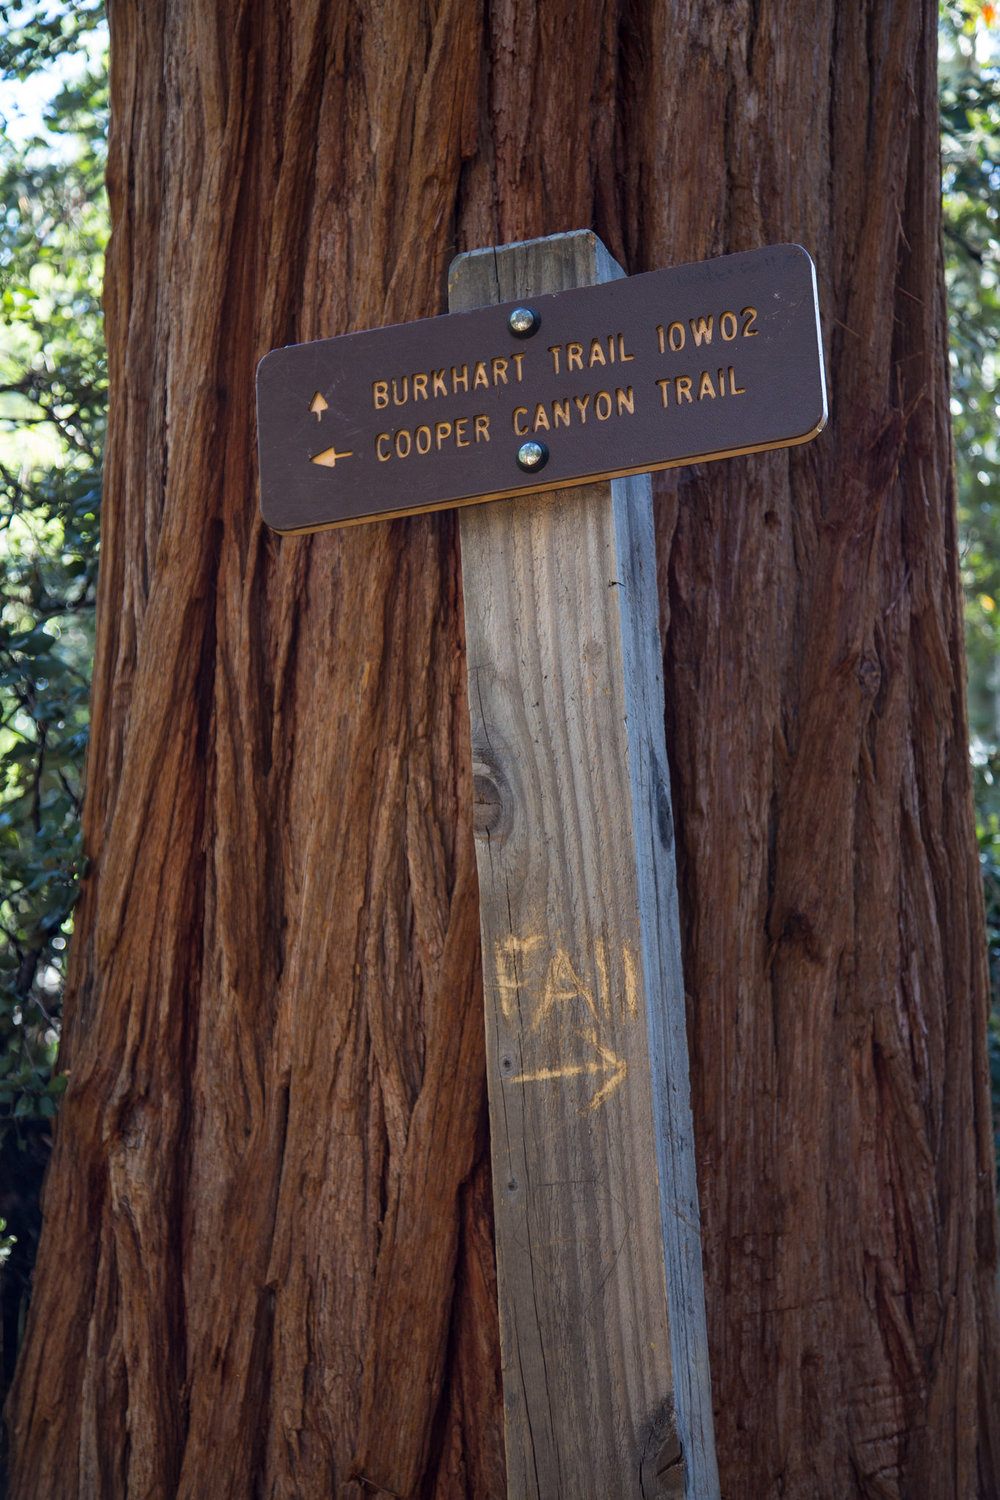 At this junction, follow the Burkhart Trail to the falls (not Cooper Canyon).